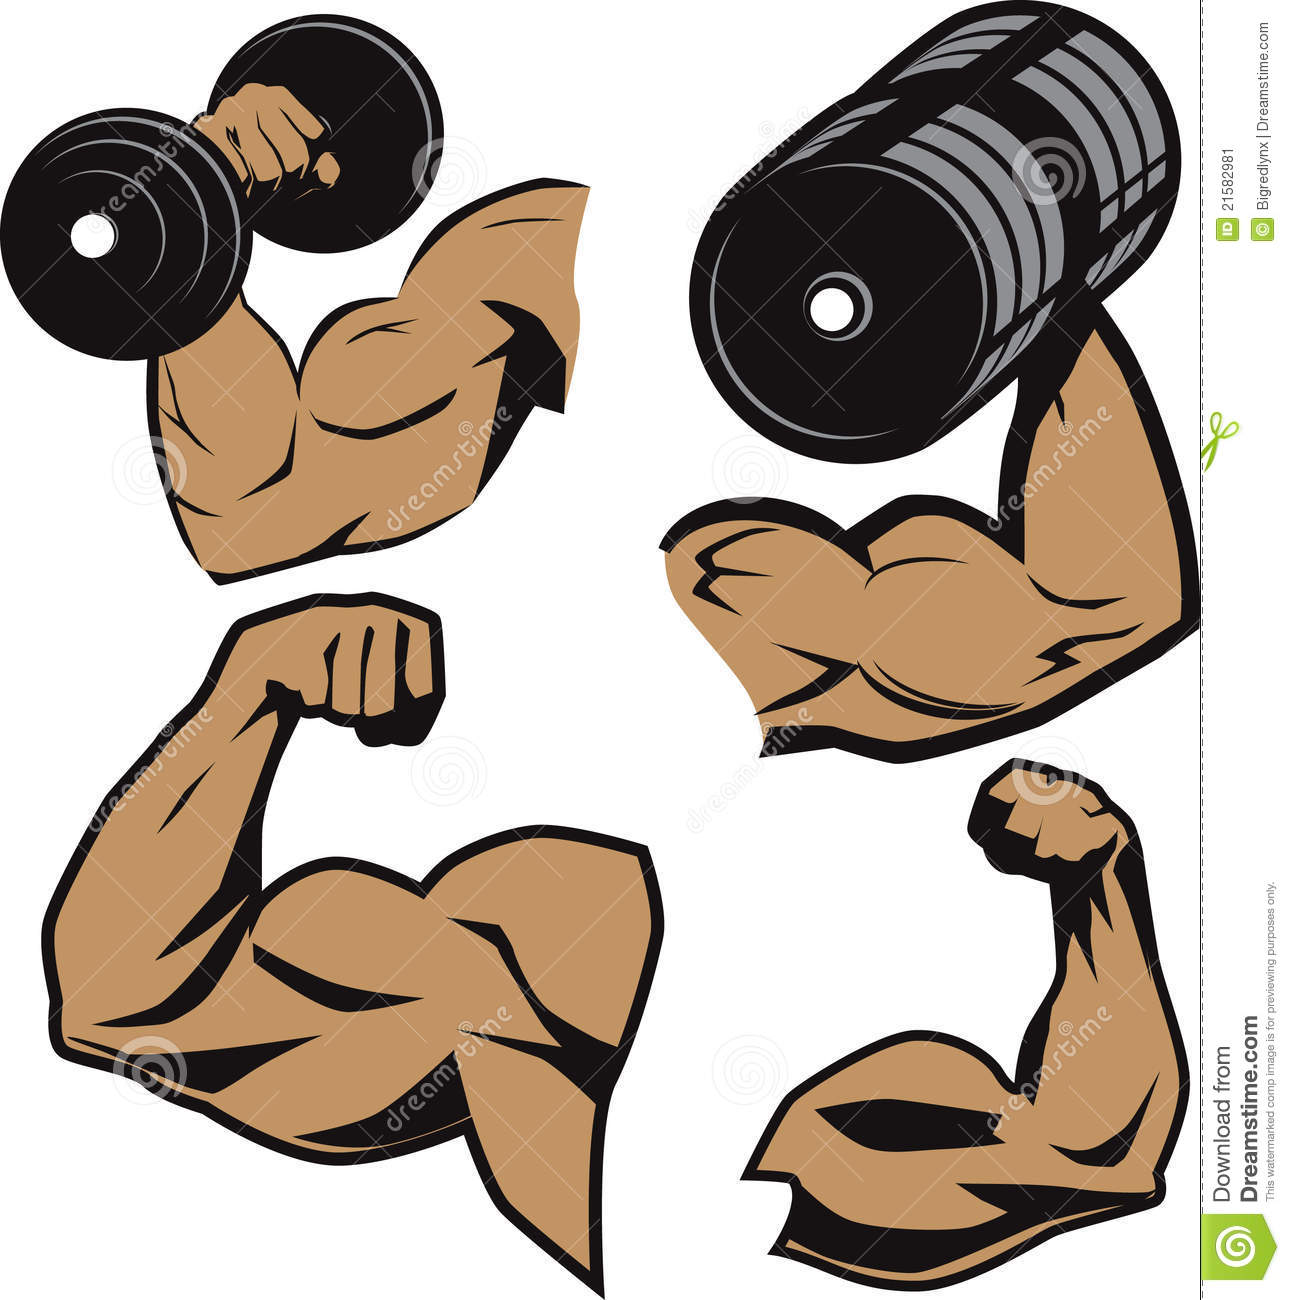 weightlifter arms stock vector illustration of curl 21582981 rh dreamstime com weightlifting clipart black and white weightlifter clipart free